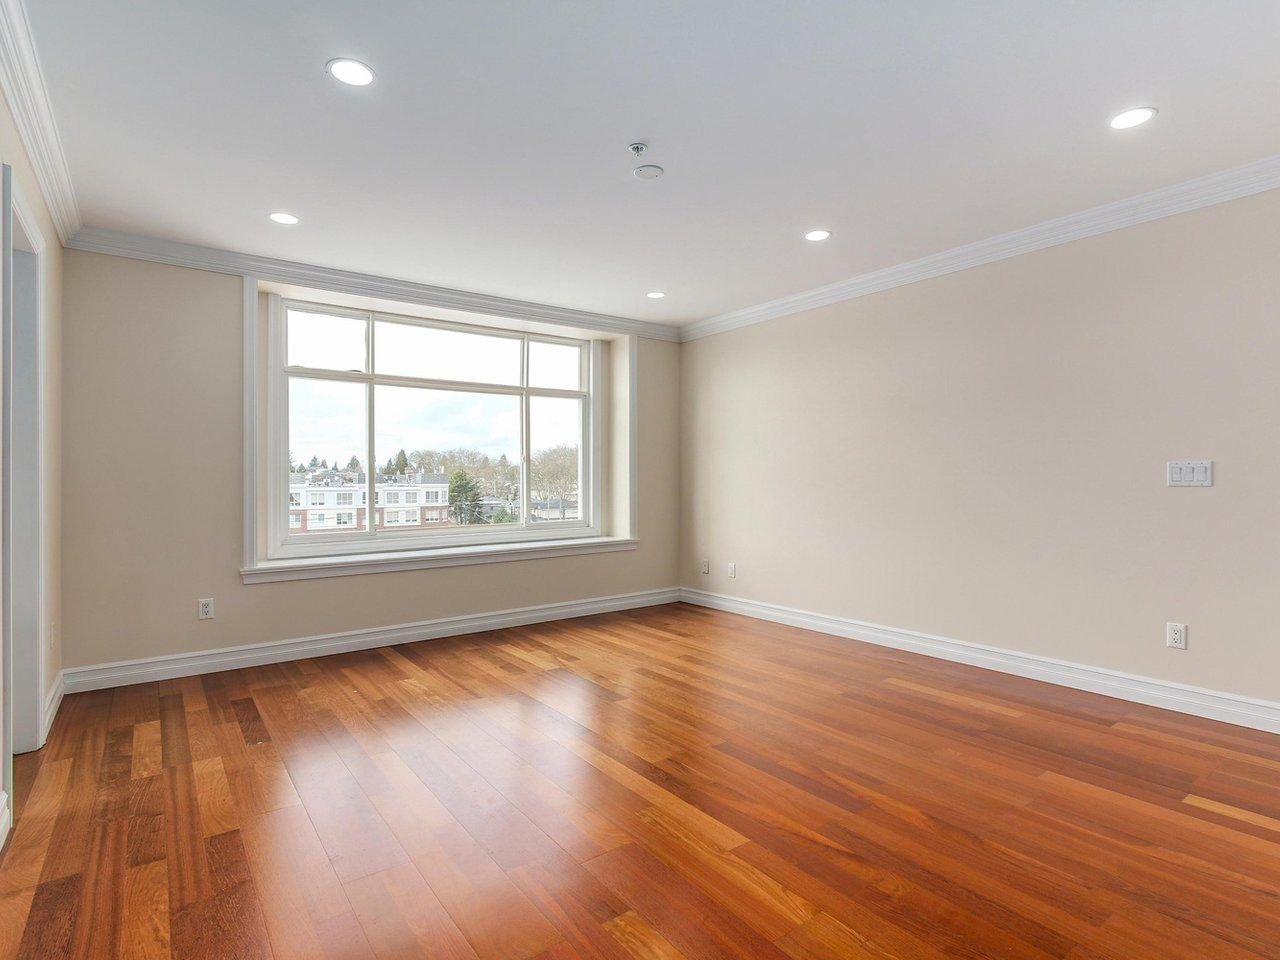 "Photo 12: Photos: 5749 CREE Street in Vancouver: Main House for sale in ""Main"" (Vancouver East)  : MLS®# R2241377"